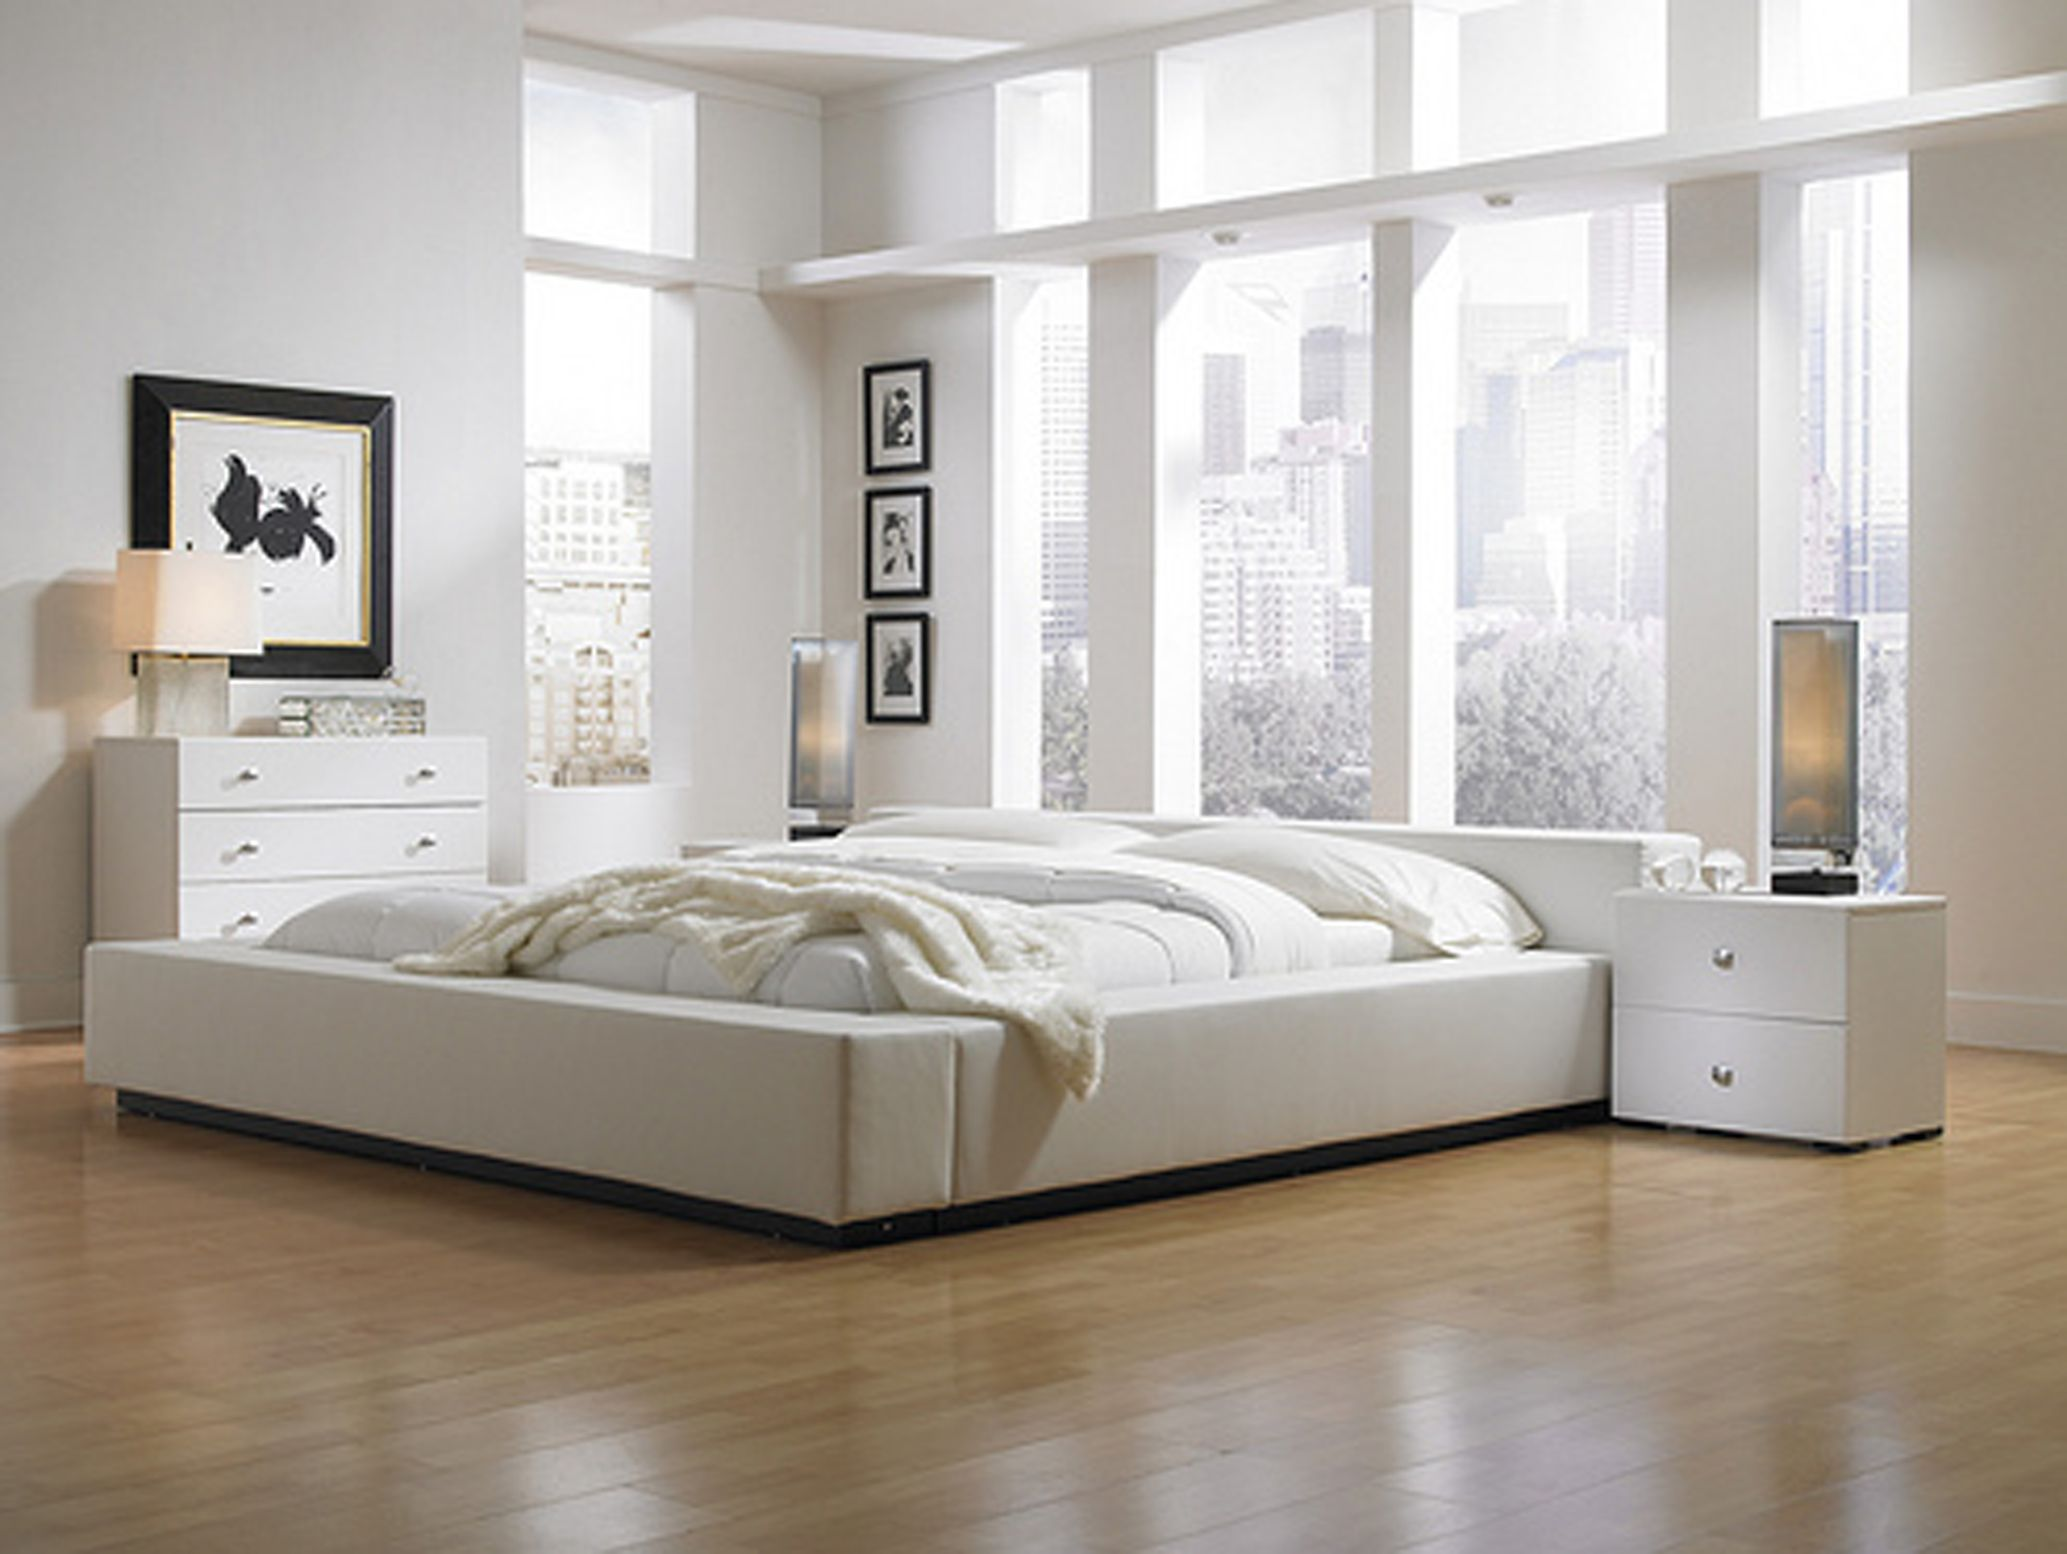 Check Out 25 White Bedroom Furniture Design Ideas When Comes To Bedroom Furniture White Bedroom Furniture Has Always Been A Favorite